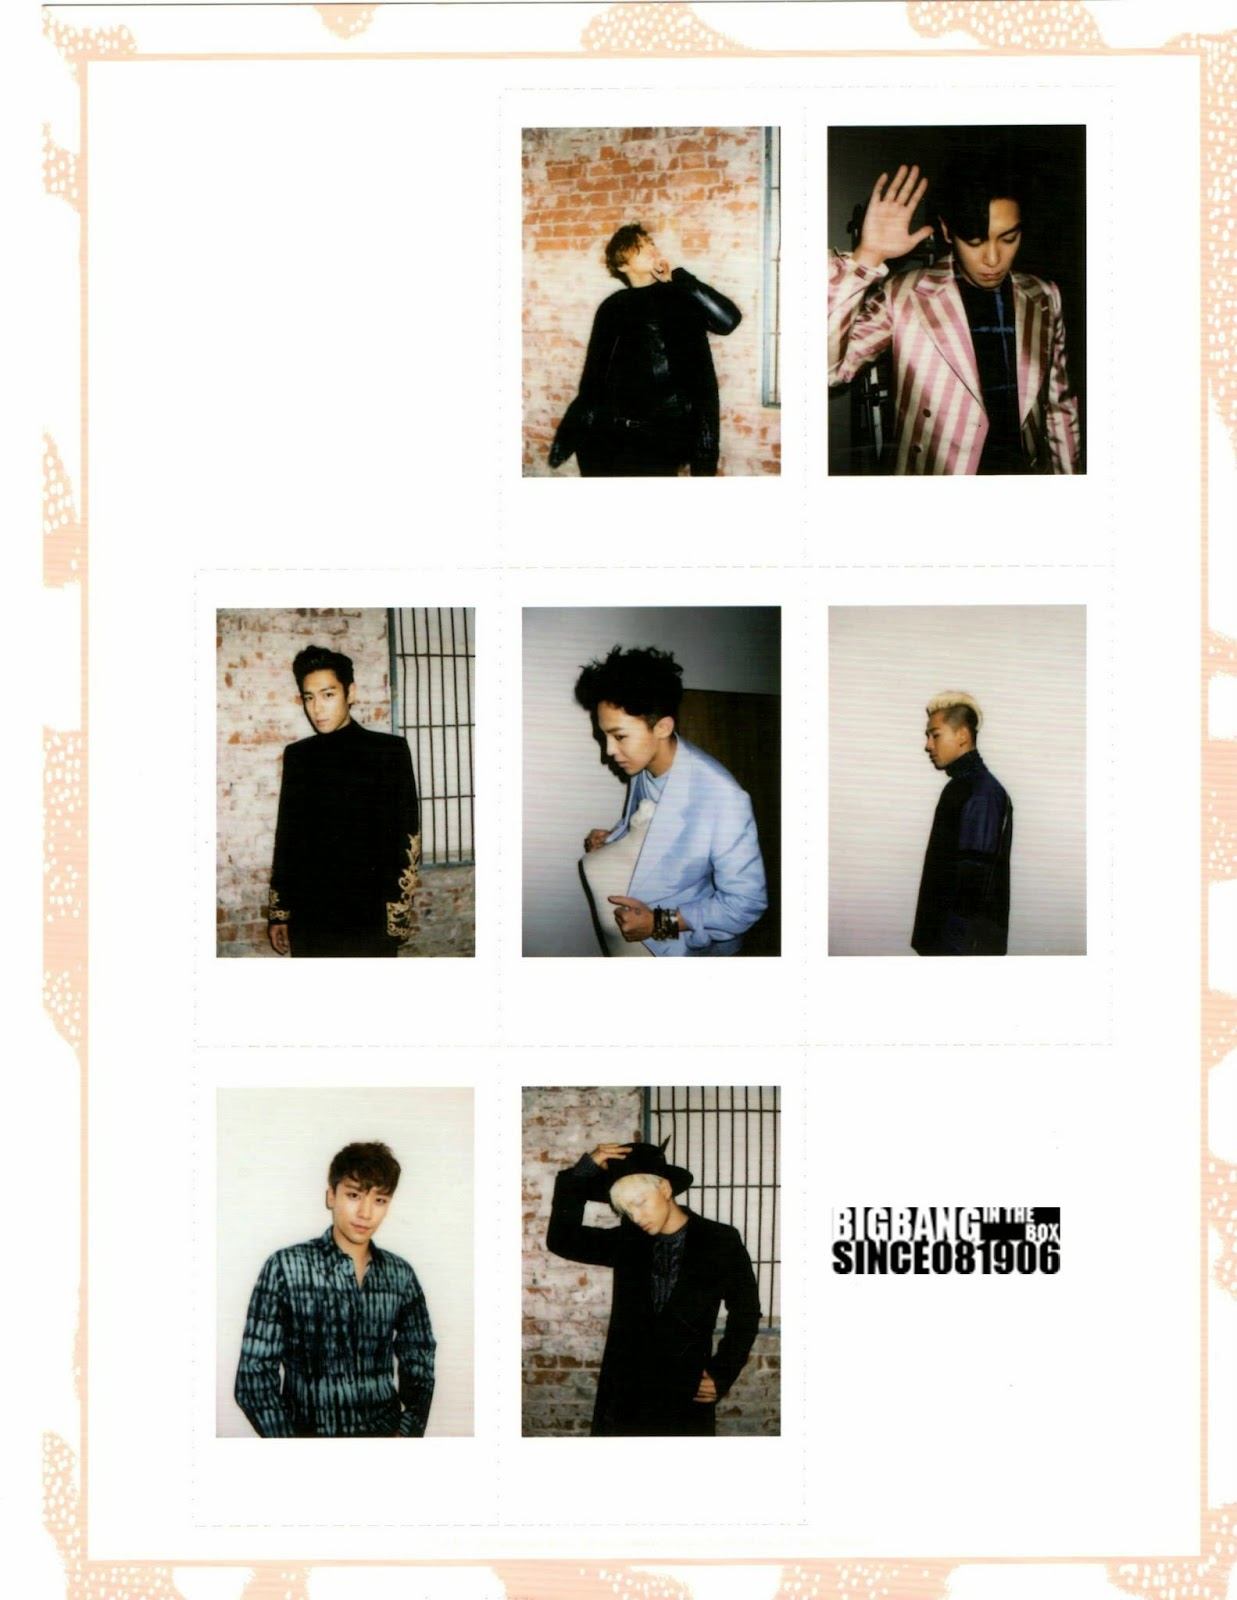 Scans: Big Bang's 2015 Welcoming Collection [PHOTOS]  Scans: Big Bang's 2015 Welcoming Collection [PHOTOS]  Scans: Big Bang's 2015 Welcoming Collection [PHOTOS]  Scans: Big Bang's 2015 Welcoming Collection [PHOTOS]  Scans: Big Bang's 2015 Welcoming Collection [PHOTOS]  Scans: Big Bang's 2015 Welcoming Collection [PHOTOS]  Scans: Big Bang's 2015 Welcoming Collection [PHOTOS]  Scans: Big Bang's 2015 Welcoming Collection [PHOTOS]